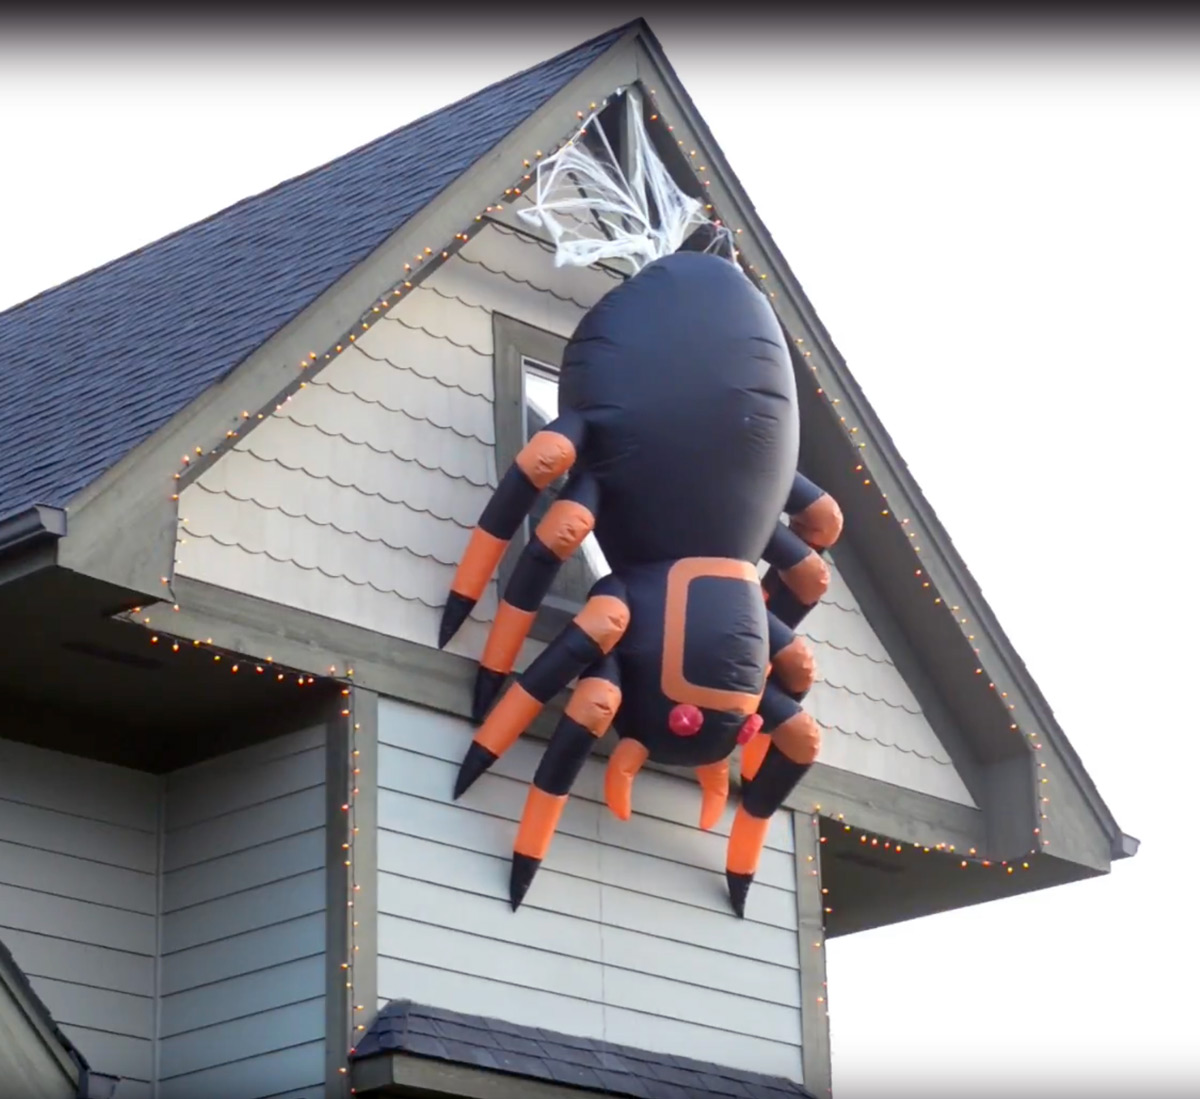 Massive Animated Inflatable Spider Creeps Up And Down